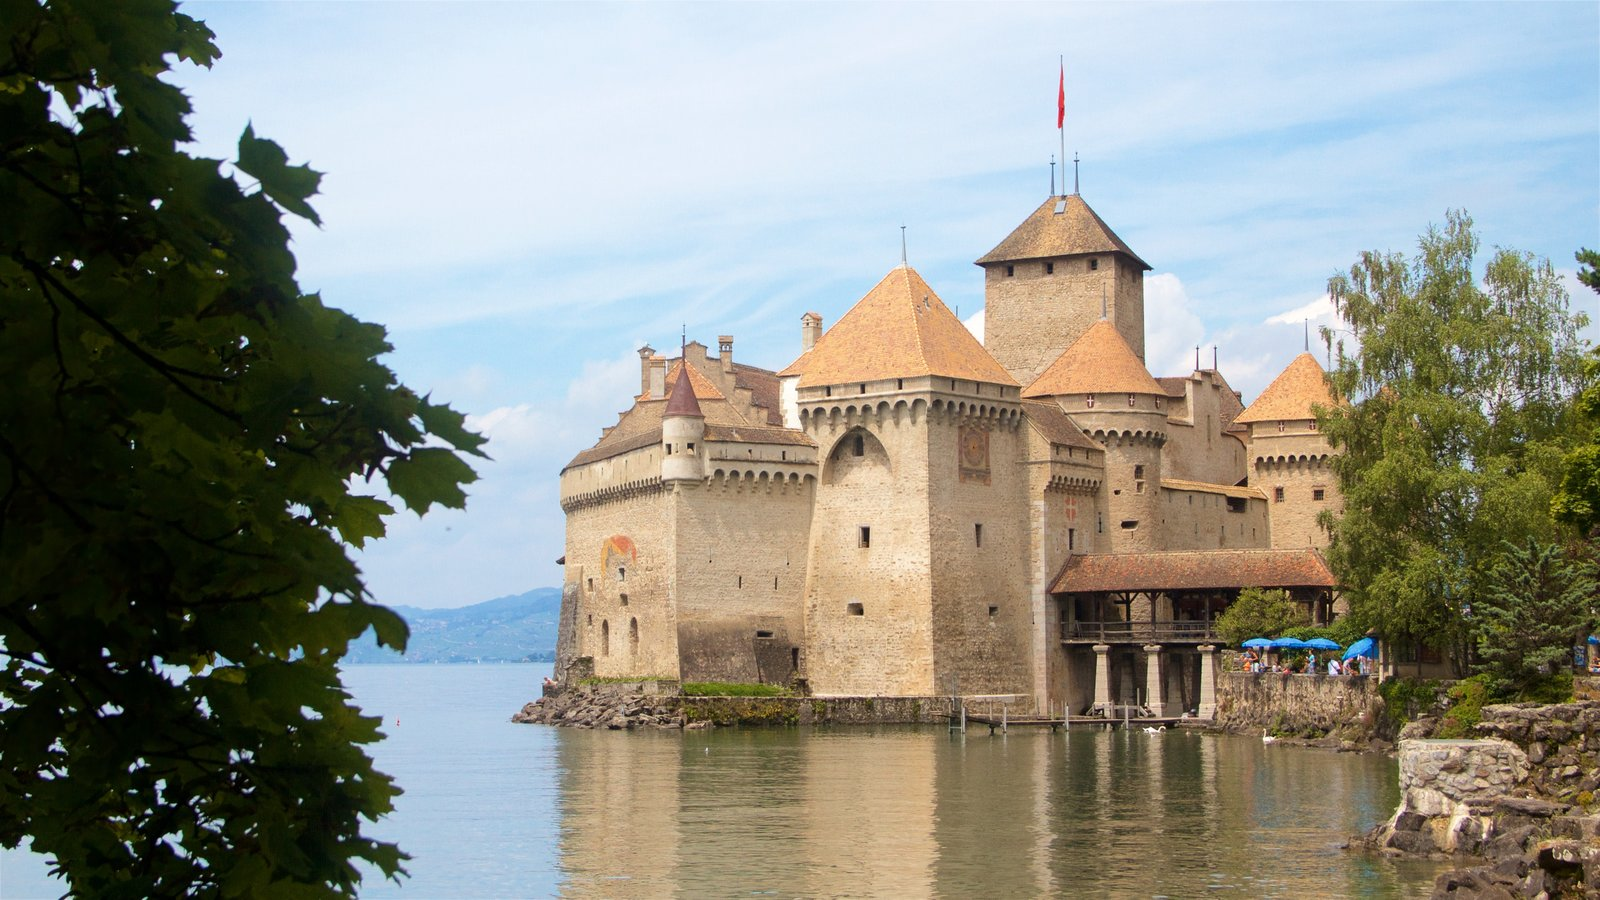 Chateau de Chillon which includes heritage architecture, a castle and a lake or waterhole